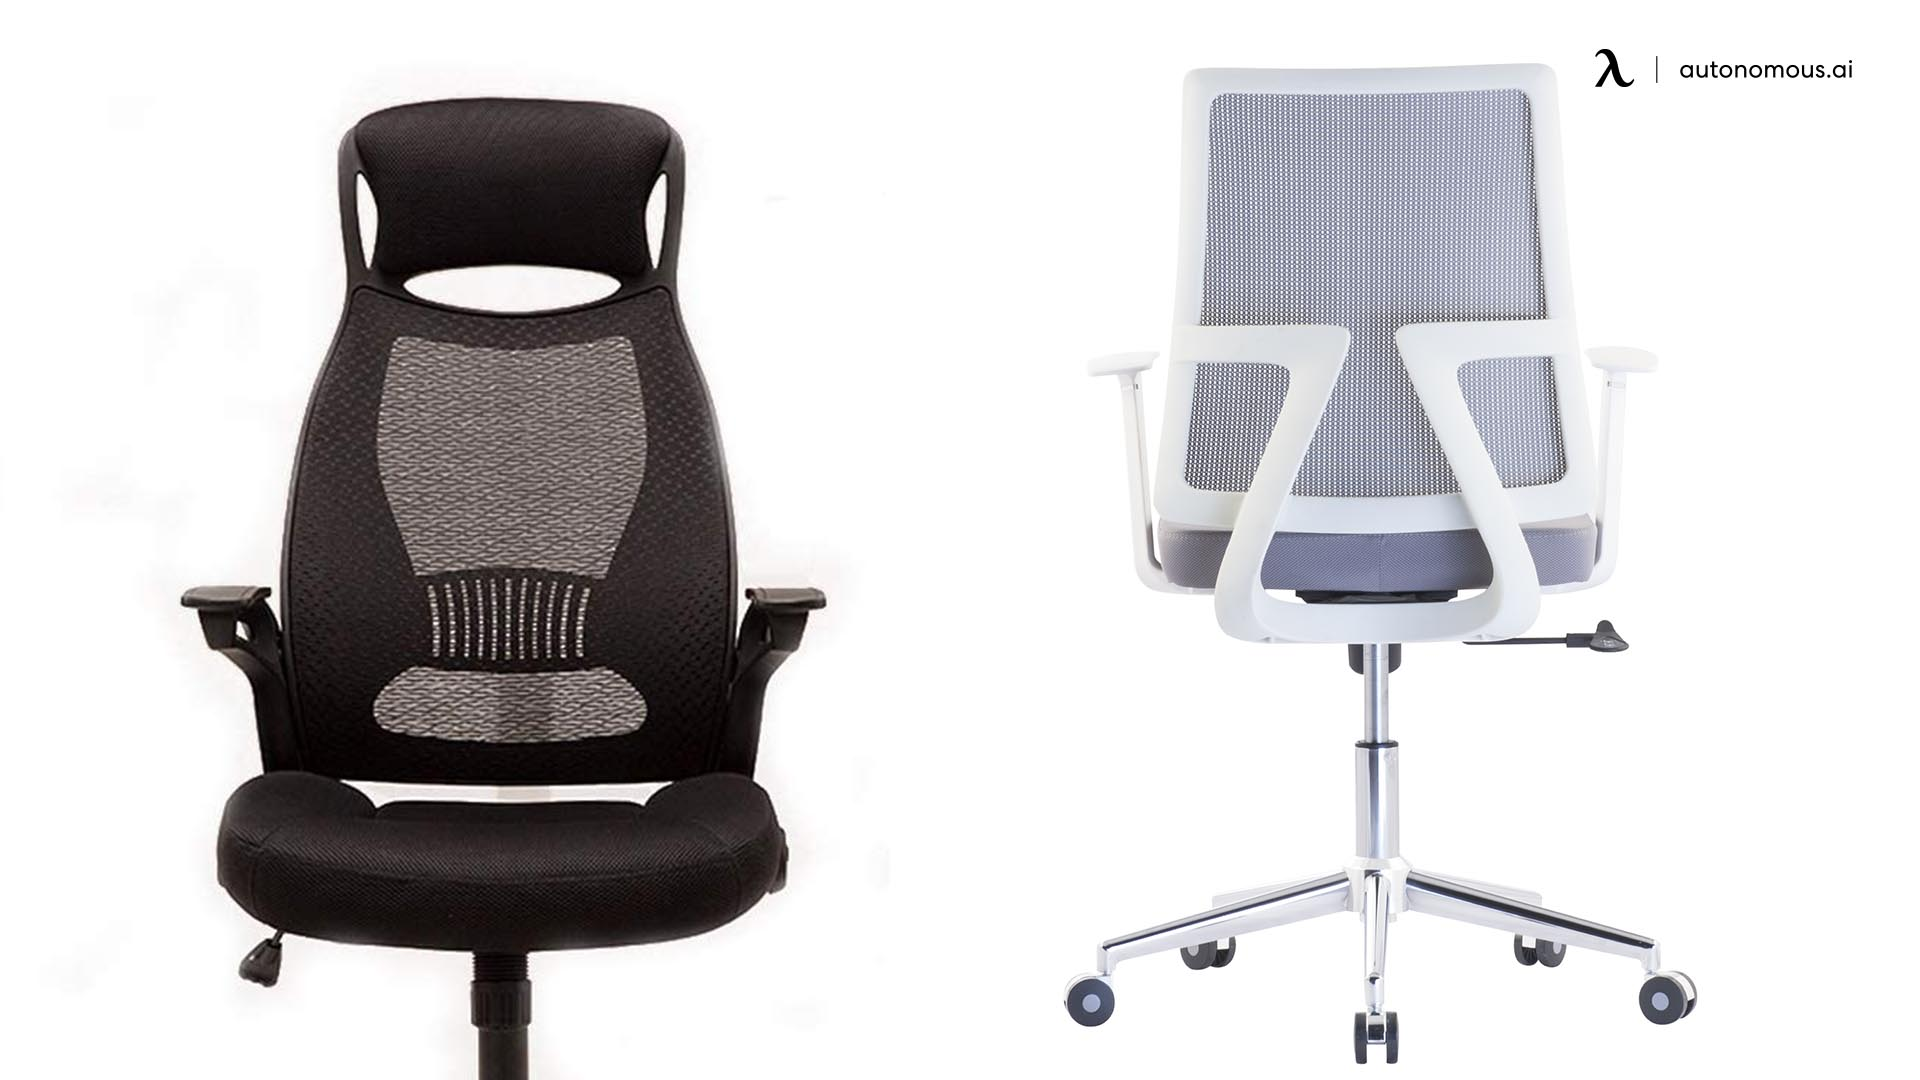 Fixed lumbar Support System for Office Chairs